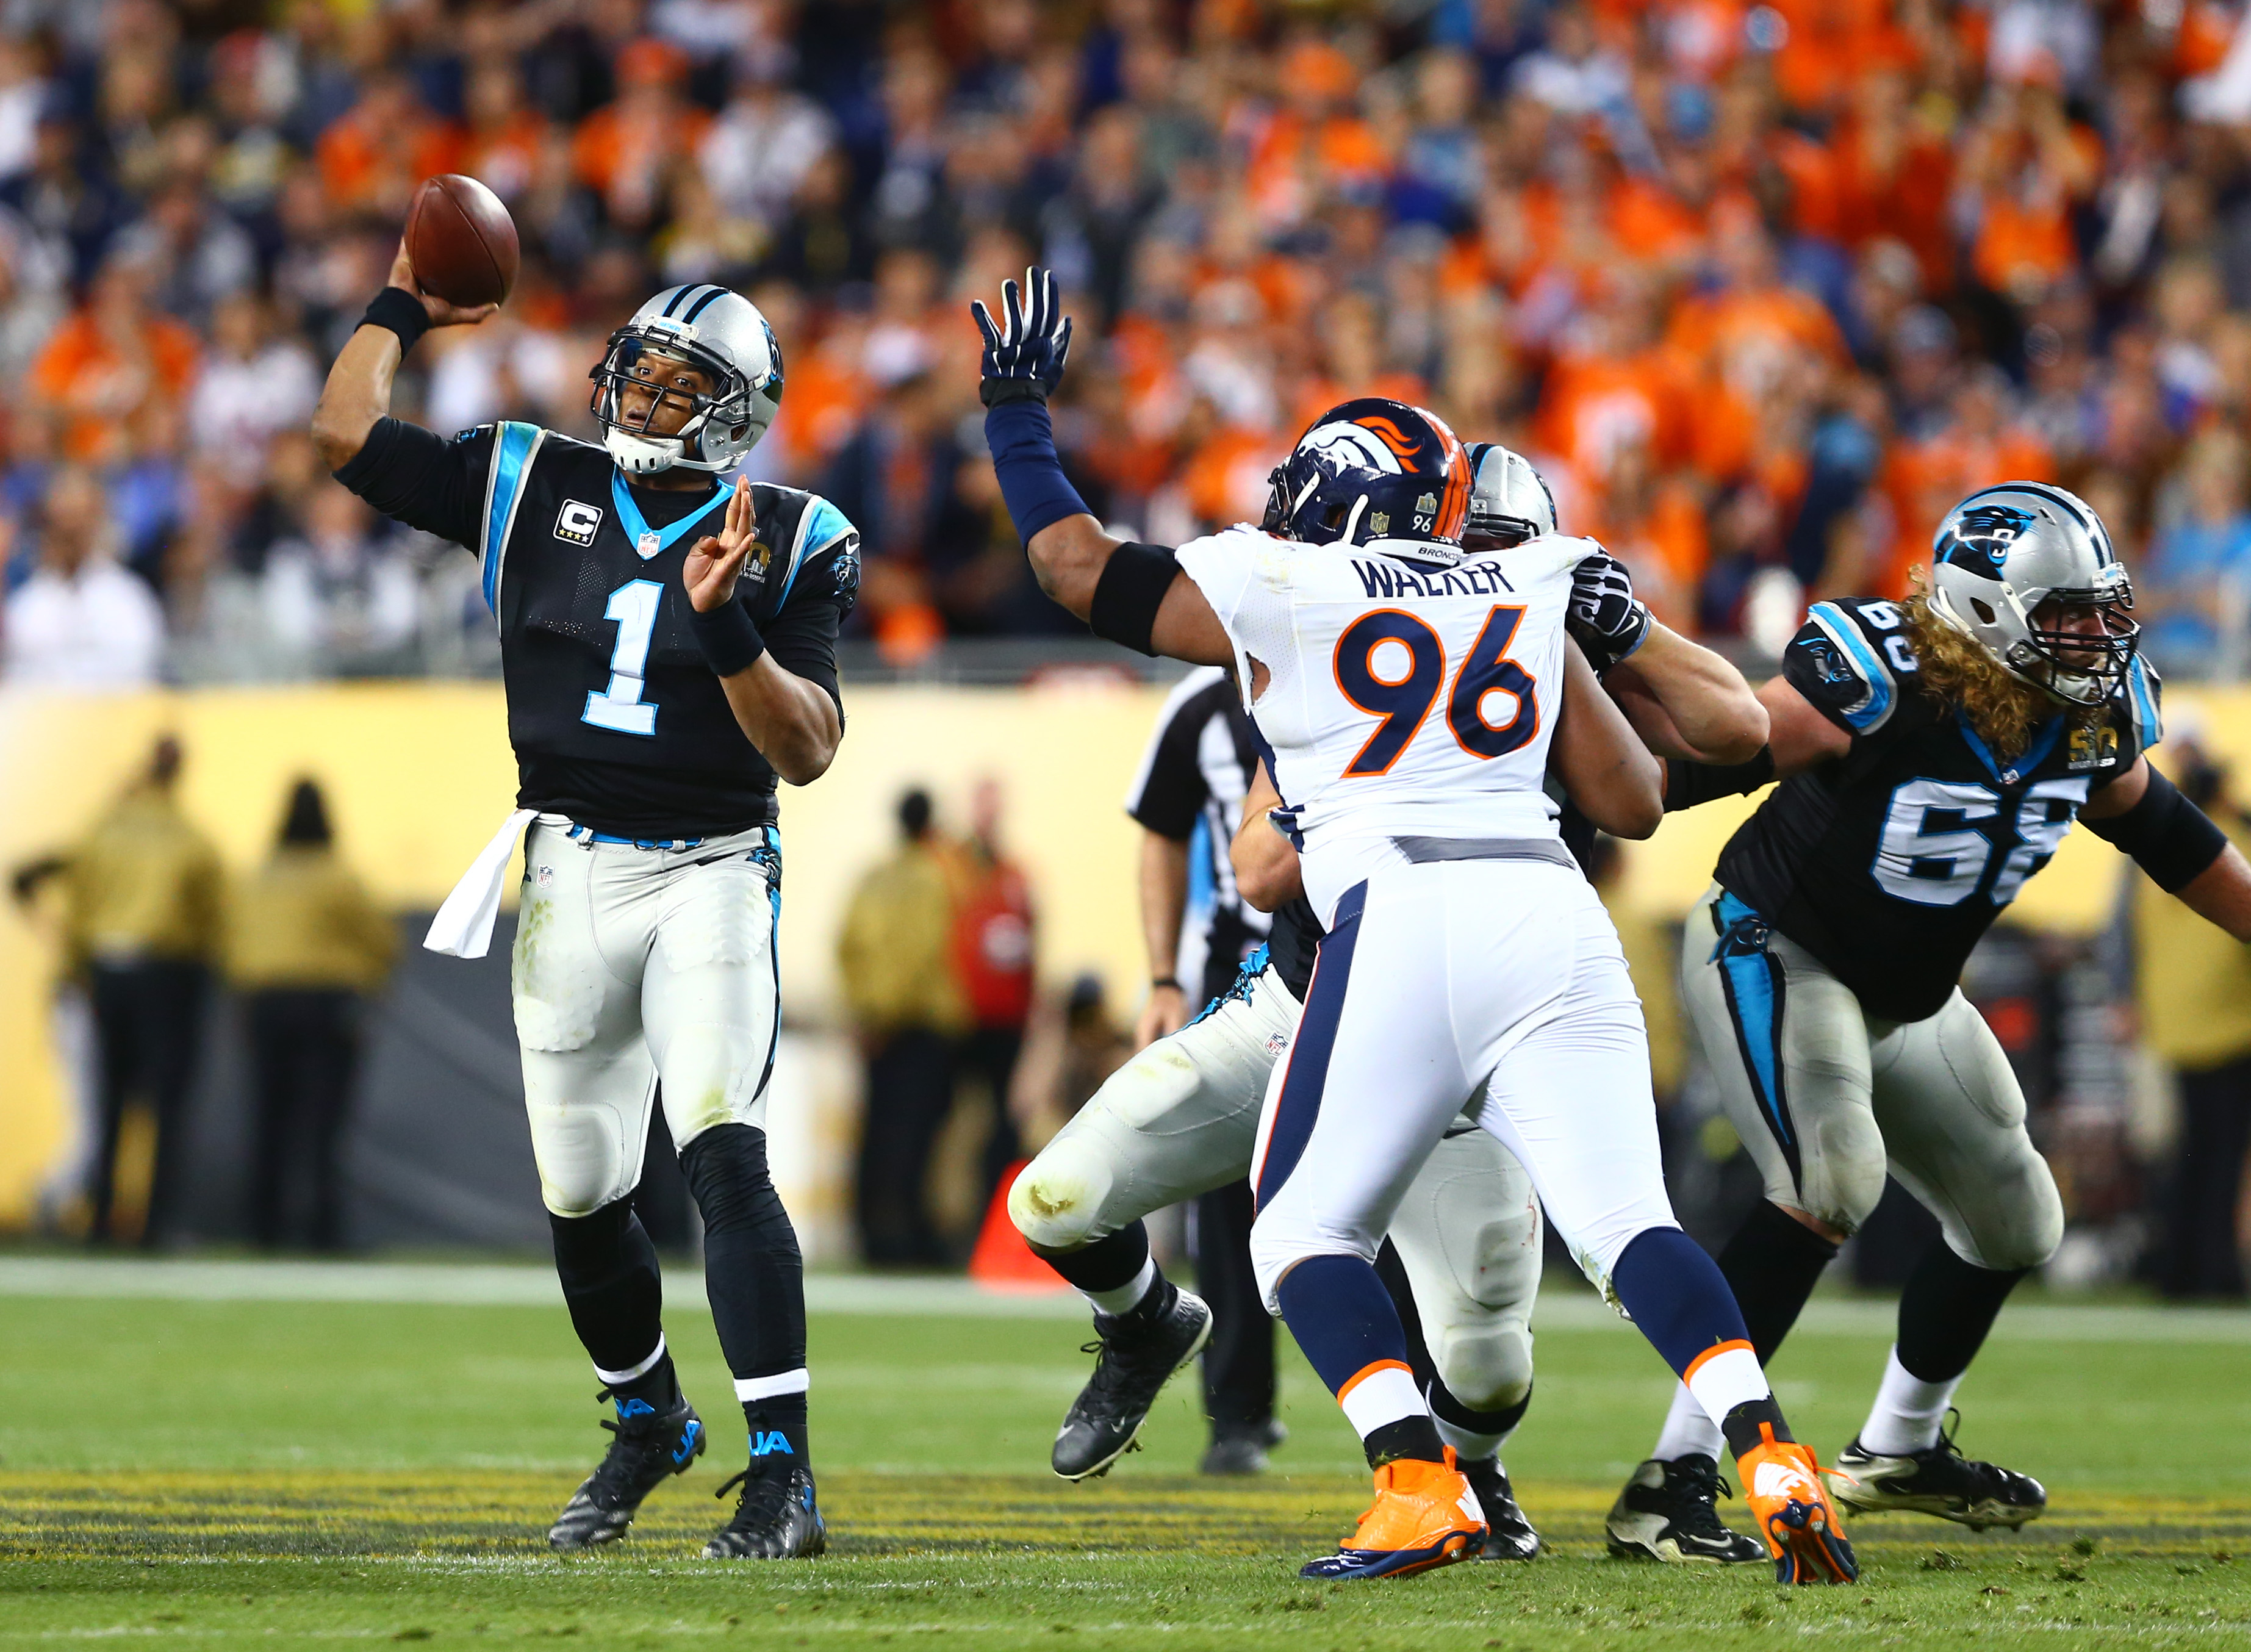 9109507-nfl-super-bowl-50-carolina-panthers-vs-denver-broncos